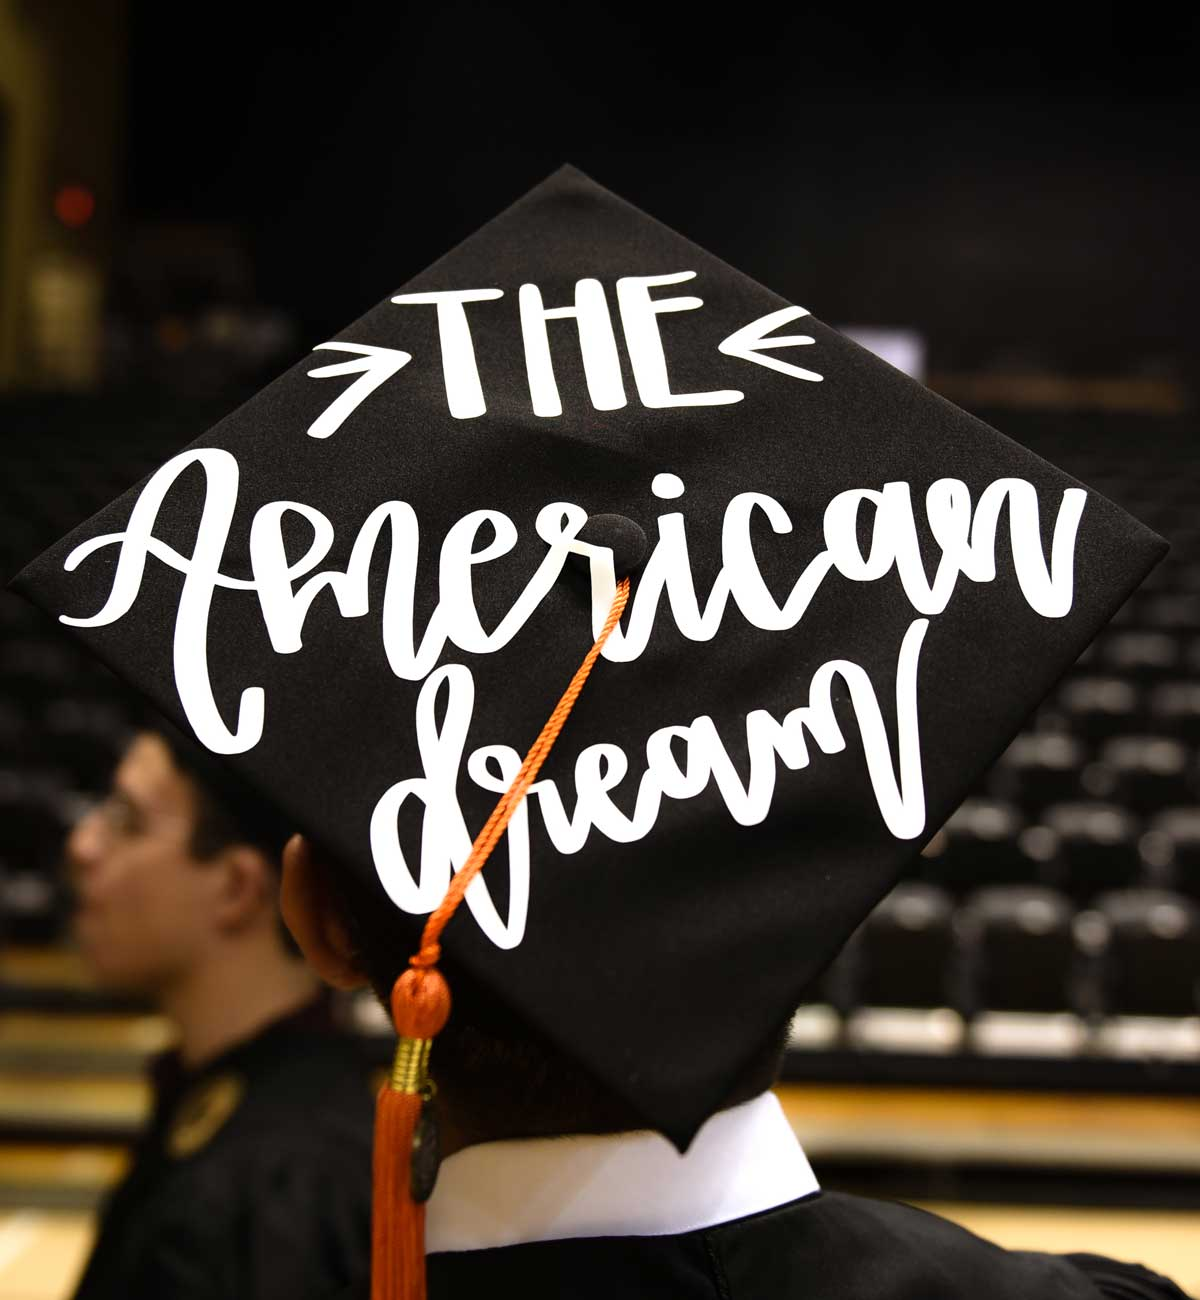 Grad cap decorated with text: The American Dream